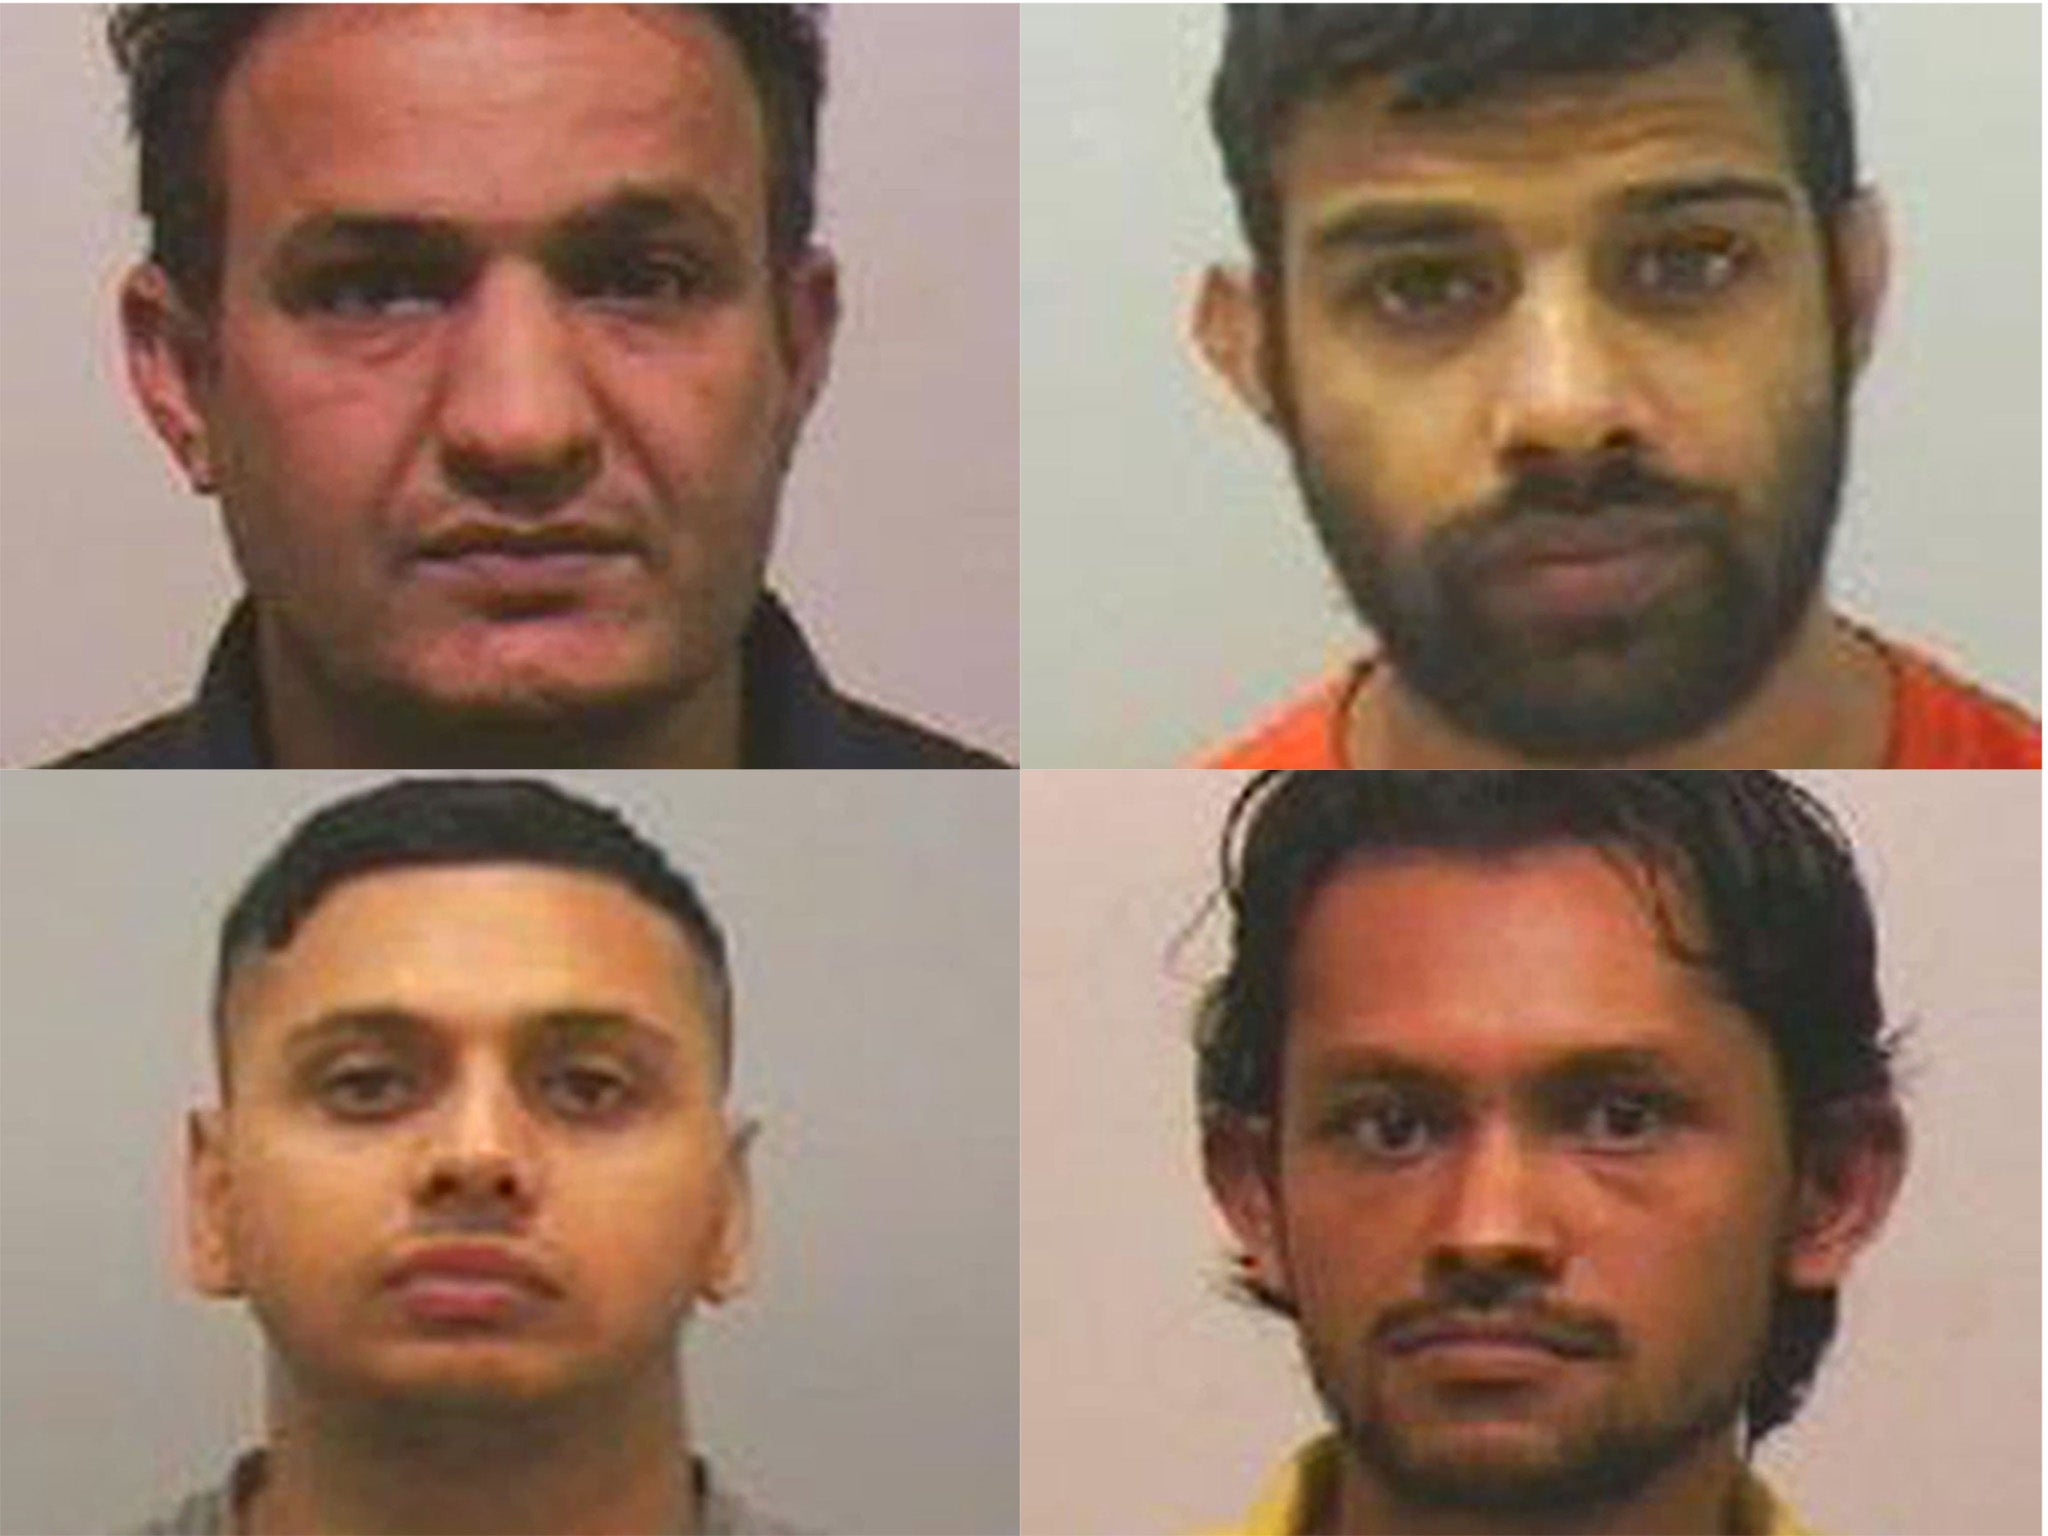 18 people convicted after girls and young women groomed, drugged and raped  in Newcastle   The Independent